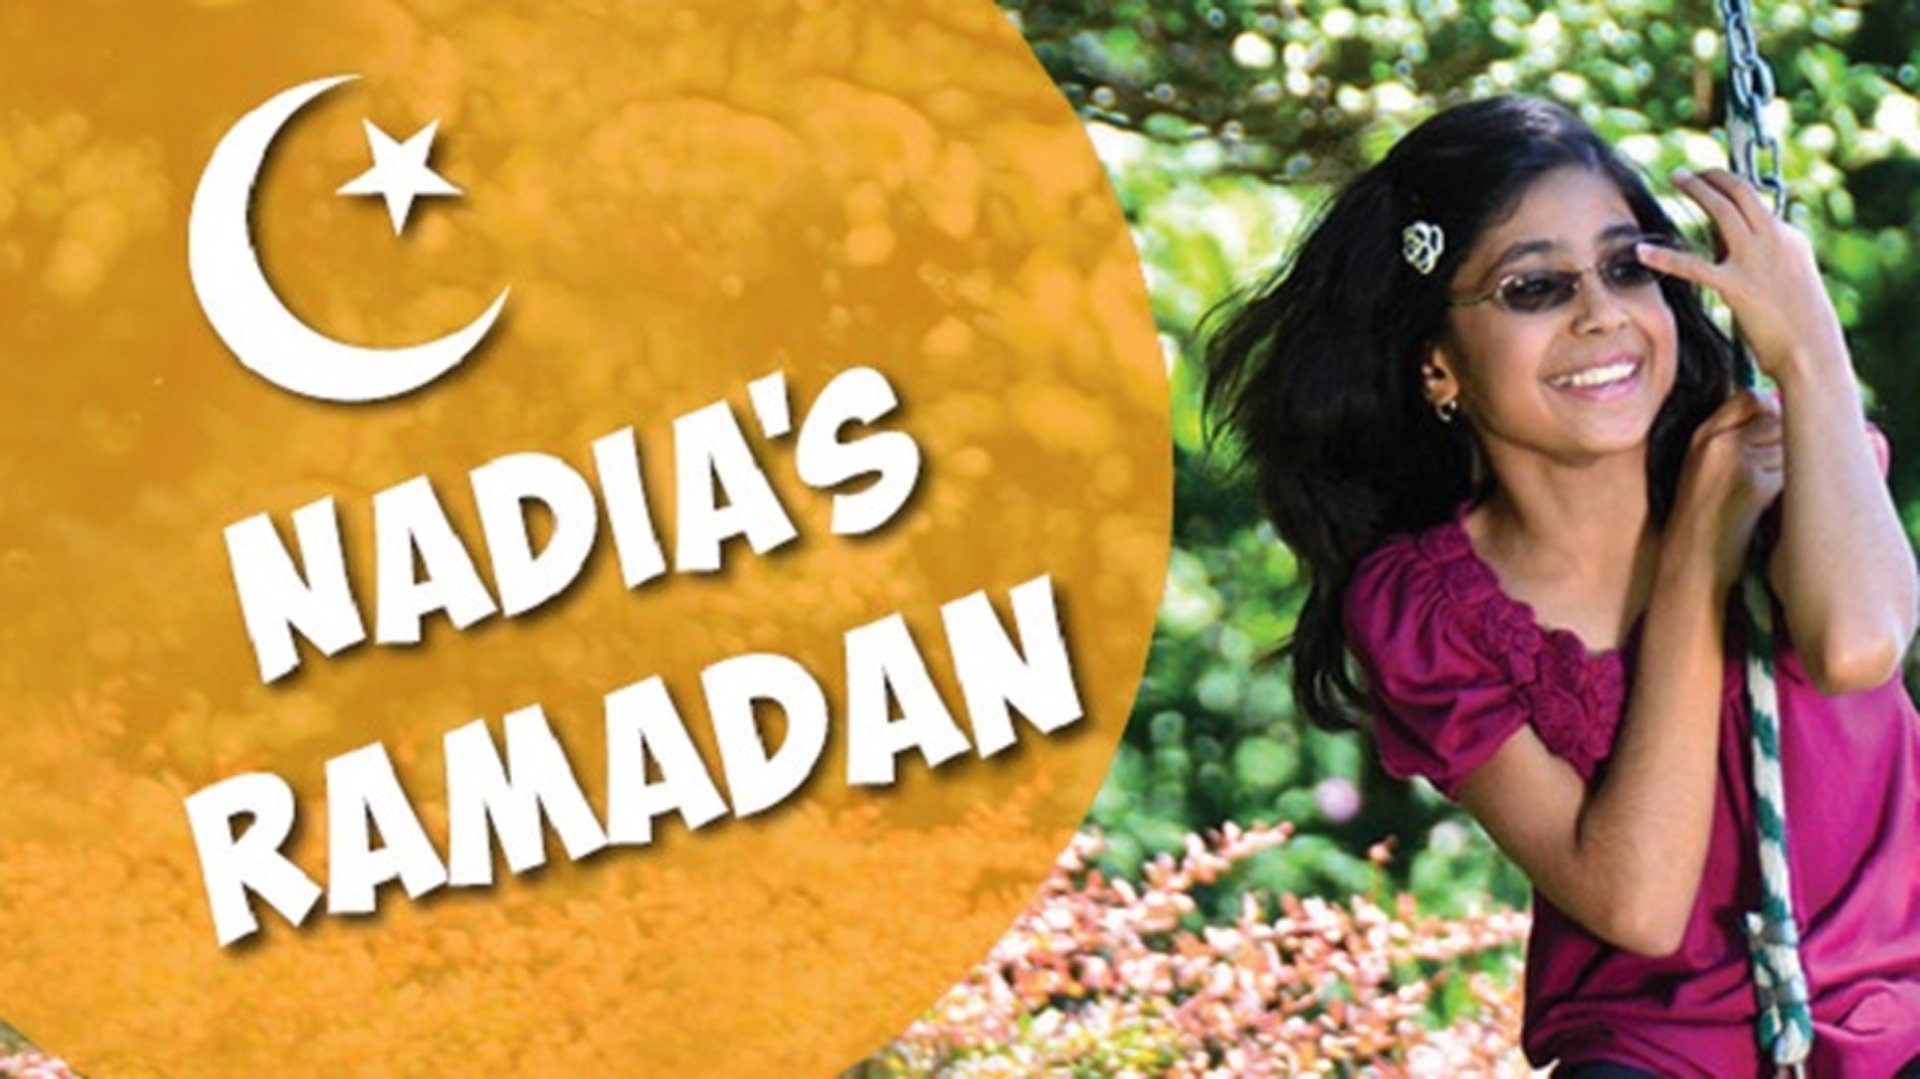 Nadia's Ramadan tells the story of a young American-Muslim girl who describes the Ramadan celebration, in which Muslims fast.